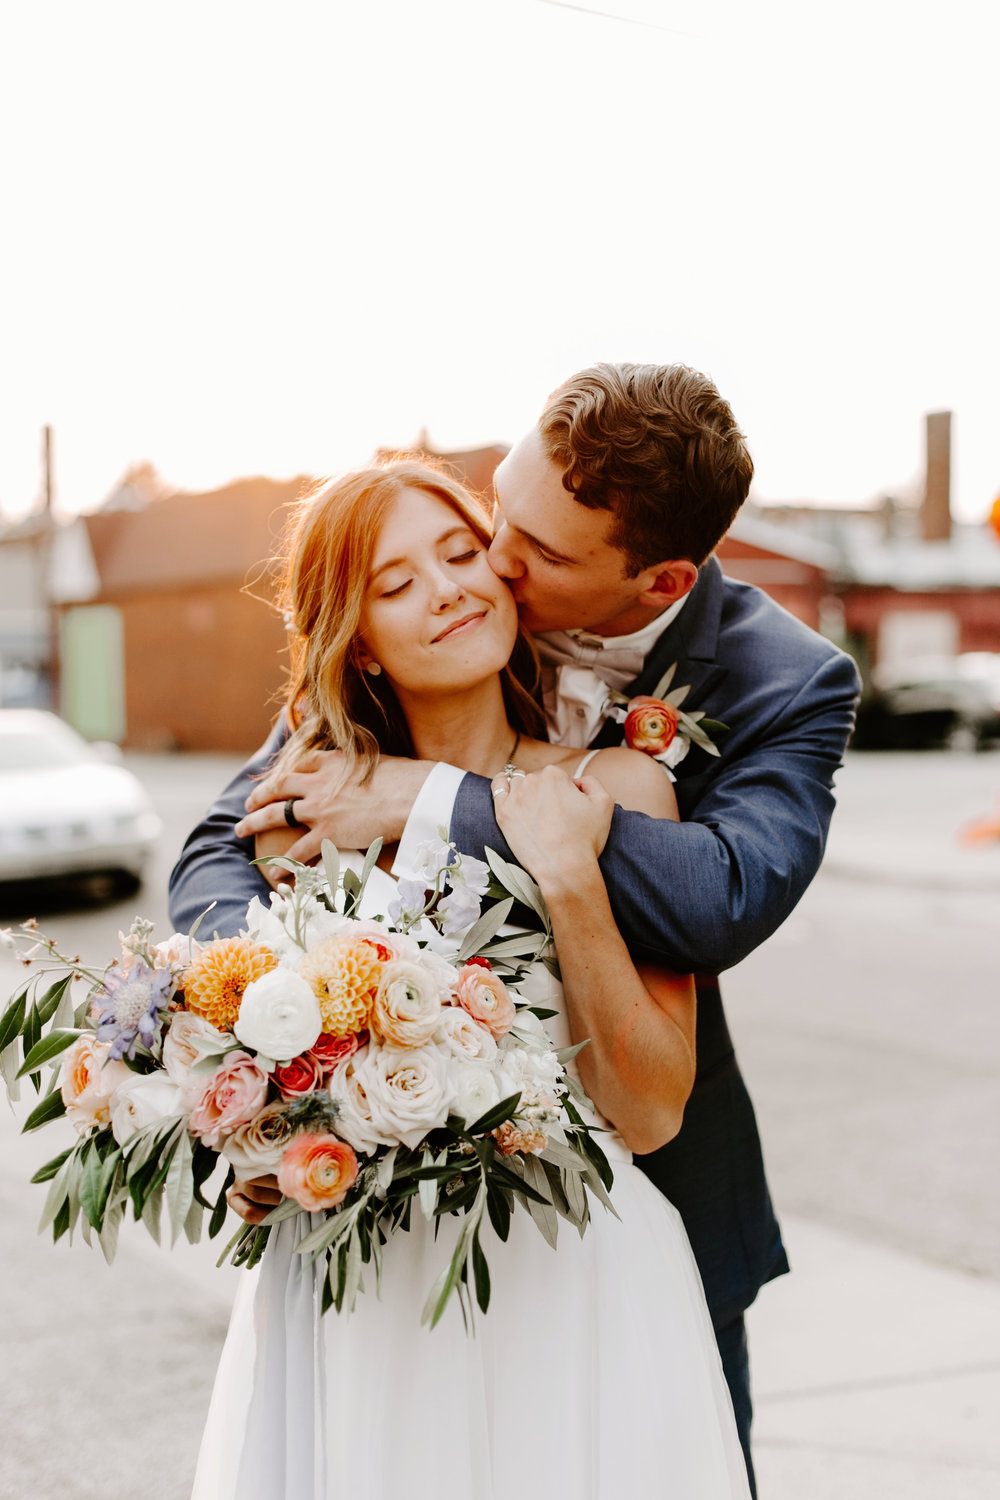 Claire and James Indianapolis Wedding The Tube Factory Emily Elyse Wehner Photography LLC-644.jpg